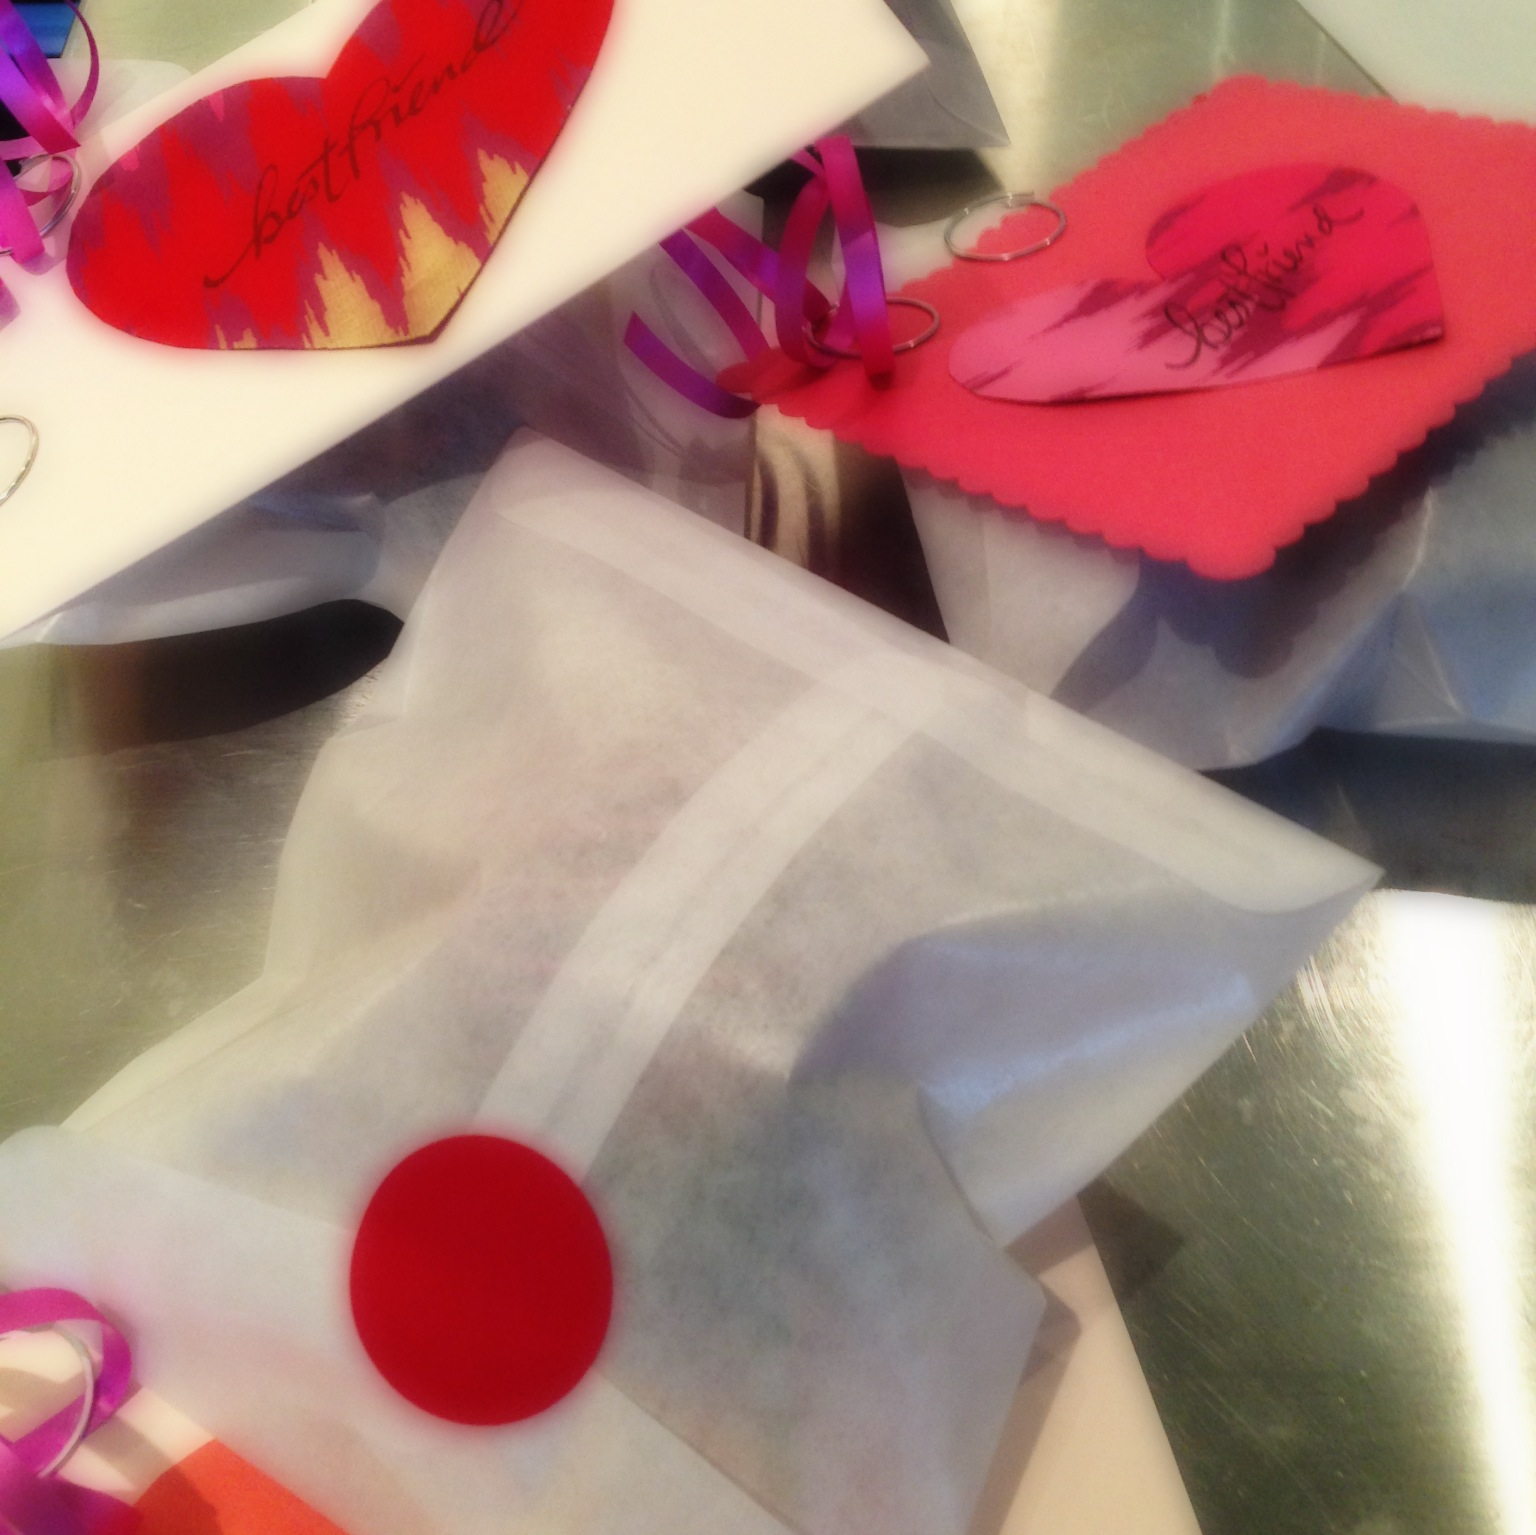 :: chocolate covered strawberries and their packaging ::